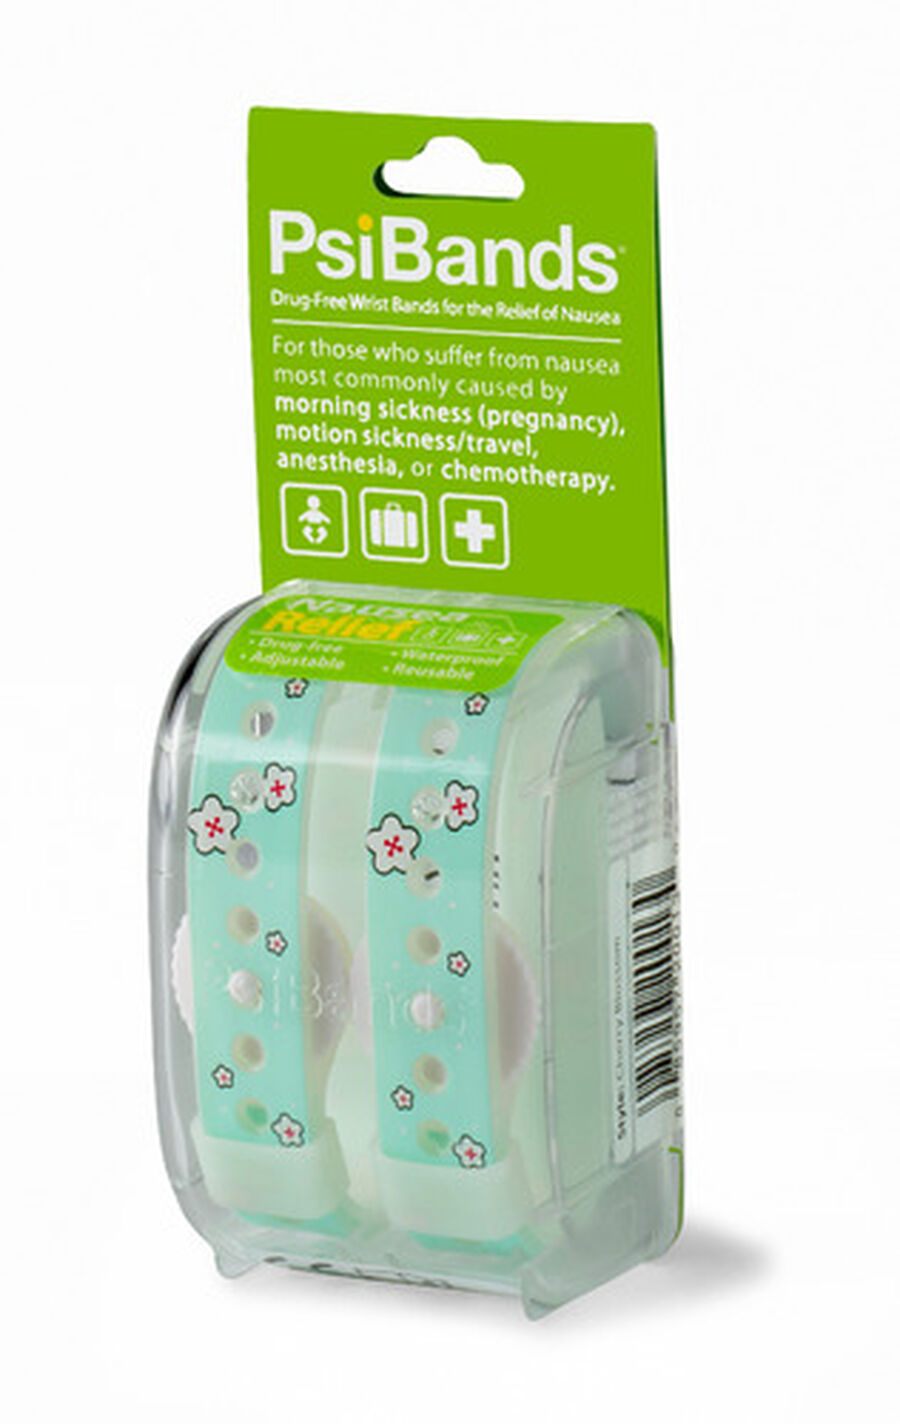 Psi Bands Nausea Relief Wrist Bands - Cherry Blossom, Cherry Blossom, large image number 2